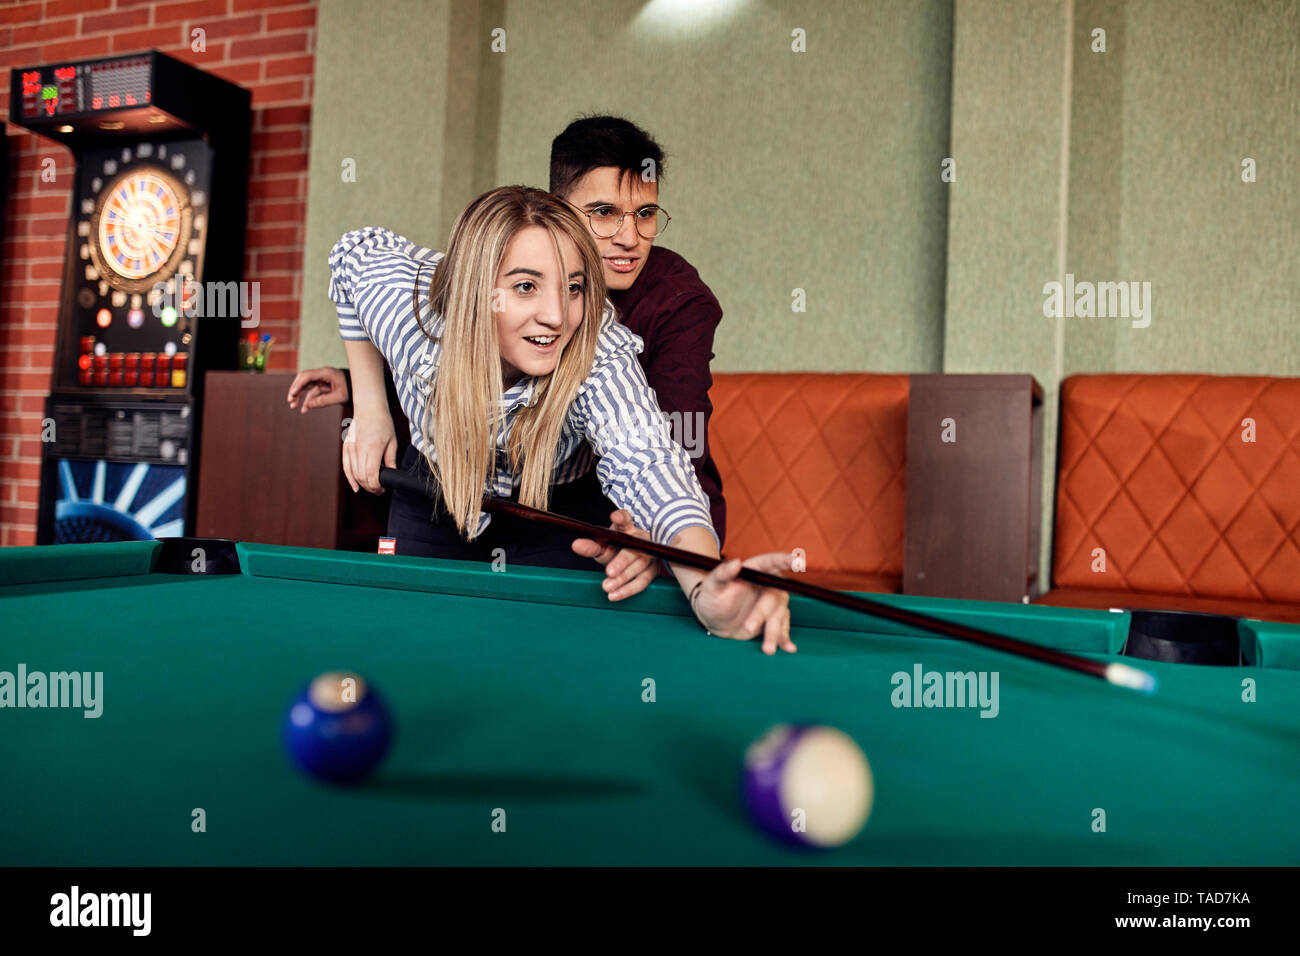 Young man guiding girlfriend at billiard table - Stock Image